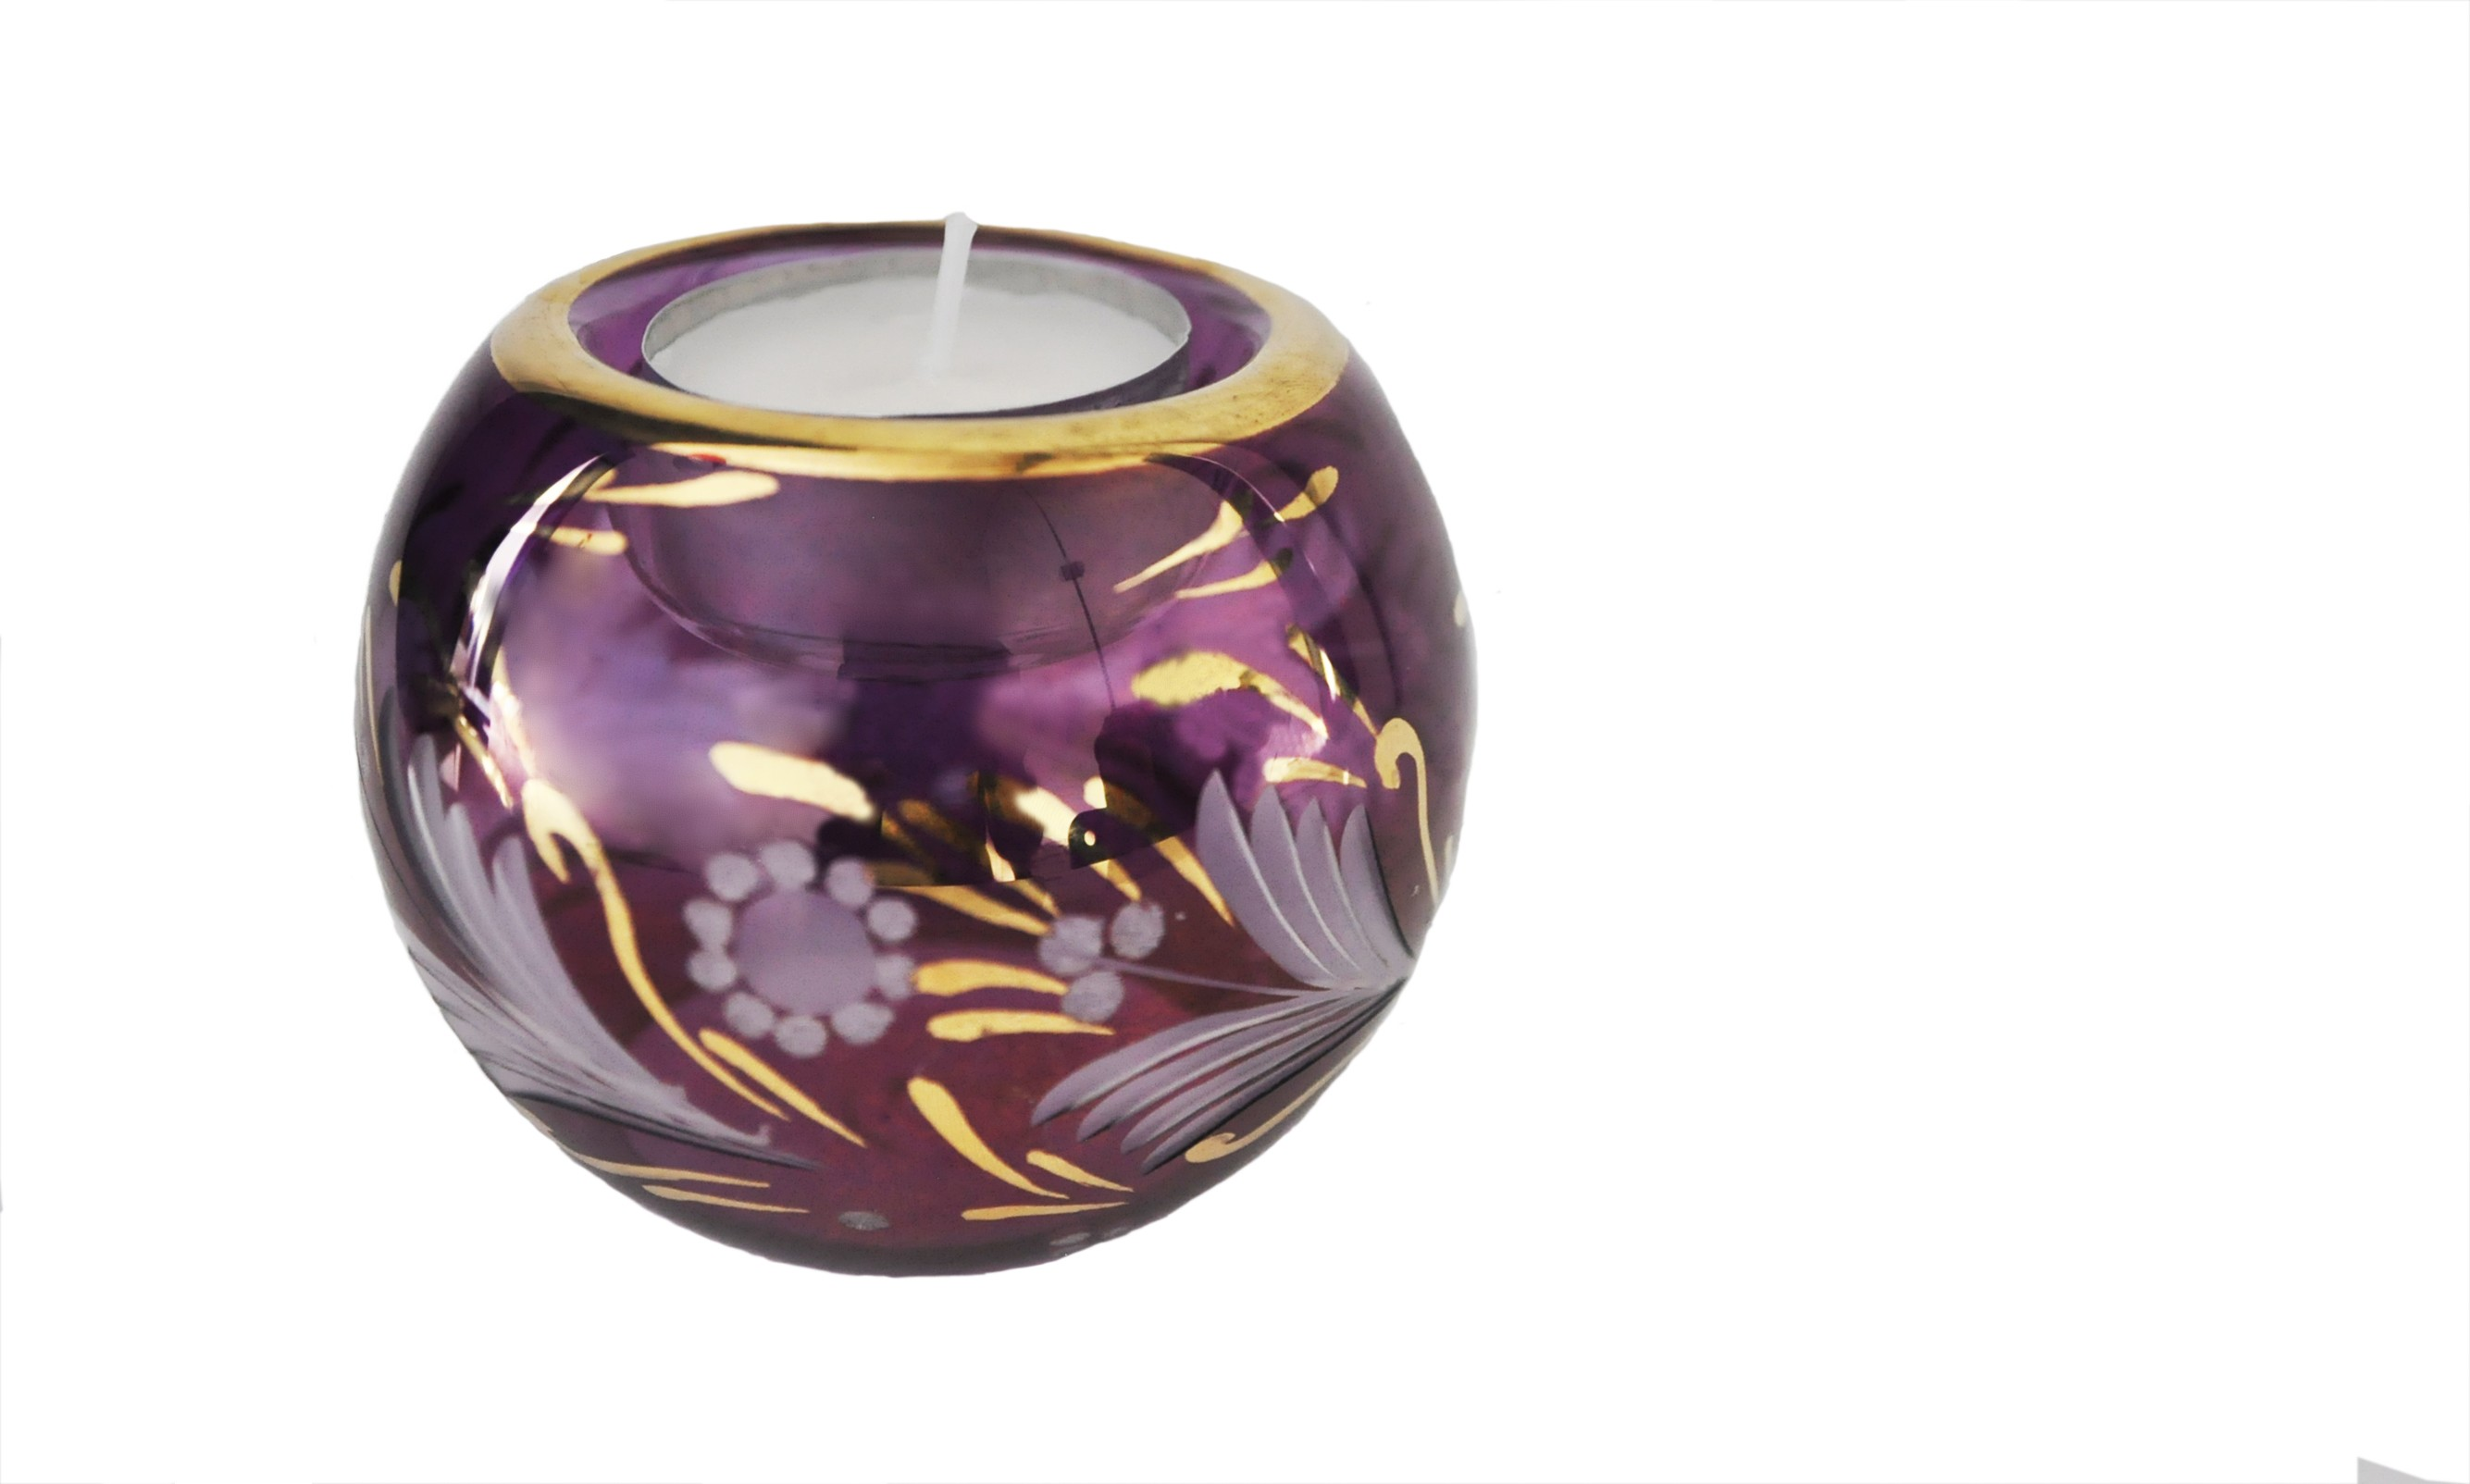 Blown glass tealight